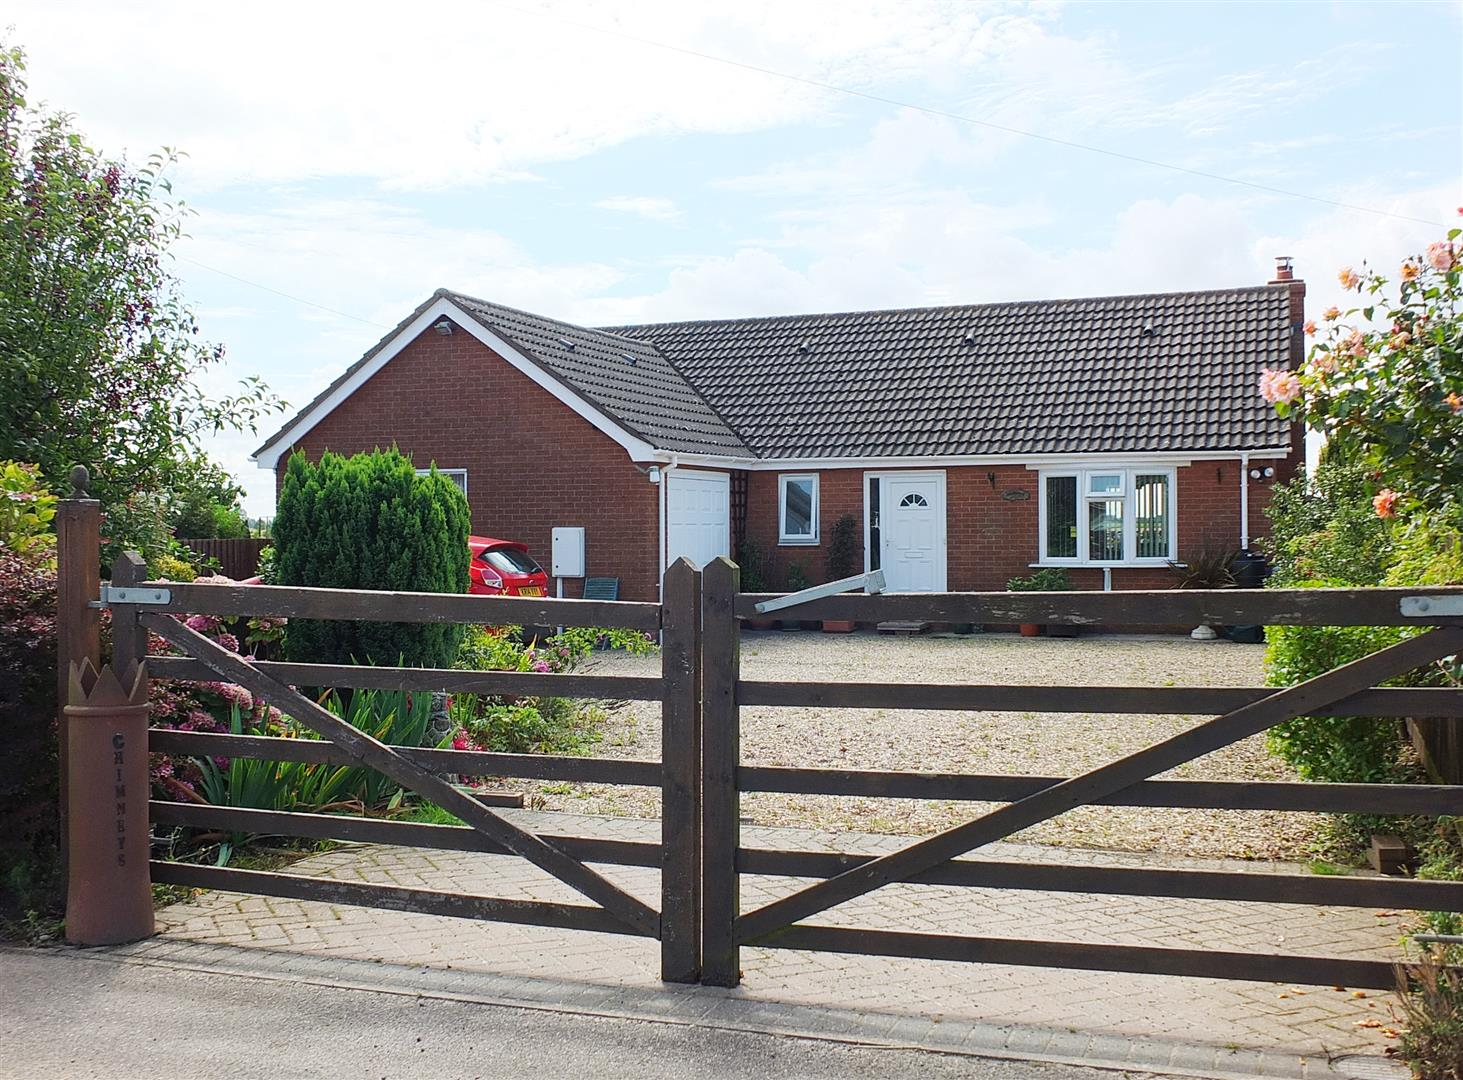 3 bed detached bungalow for sale in Gedney Drove End Spalding, PE12 9PD  - Property Image 1